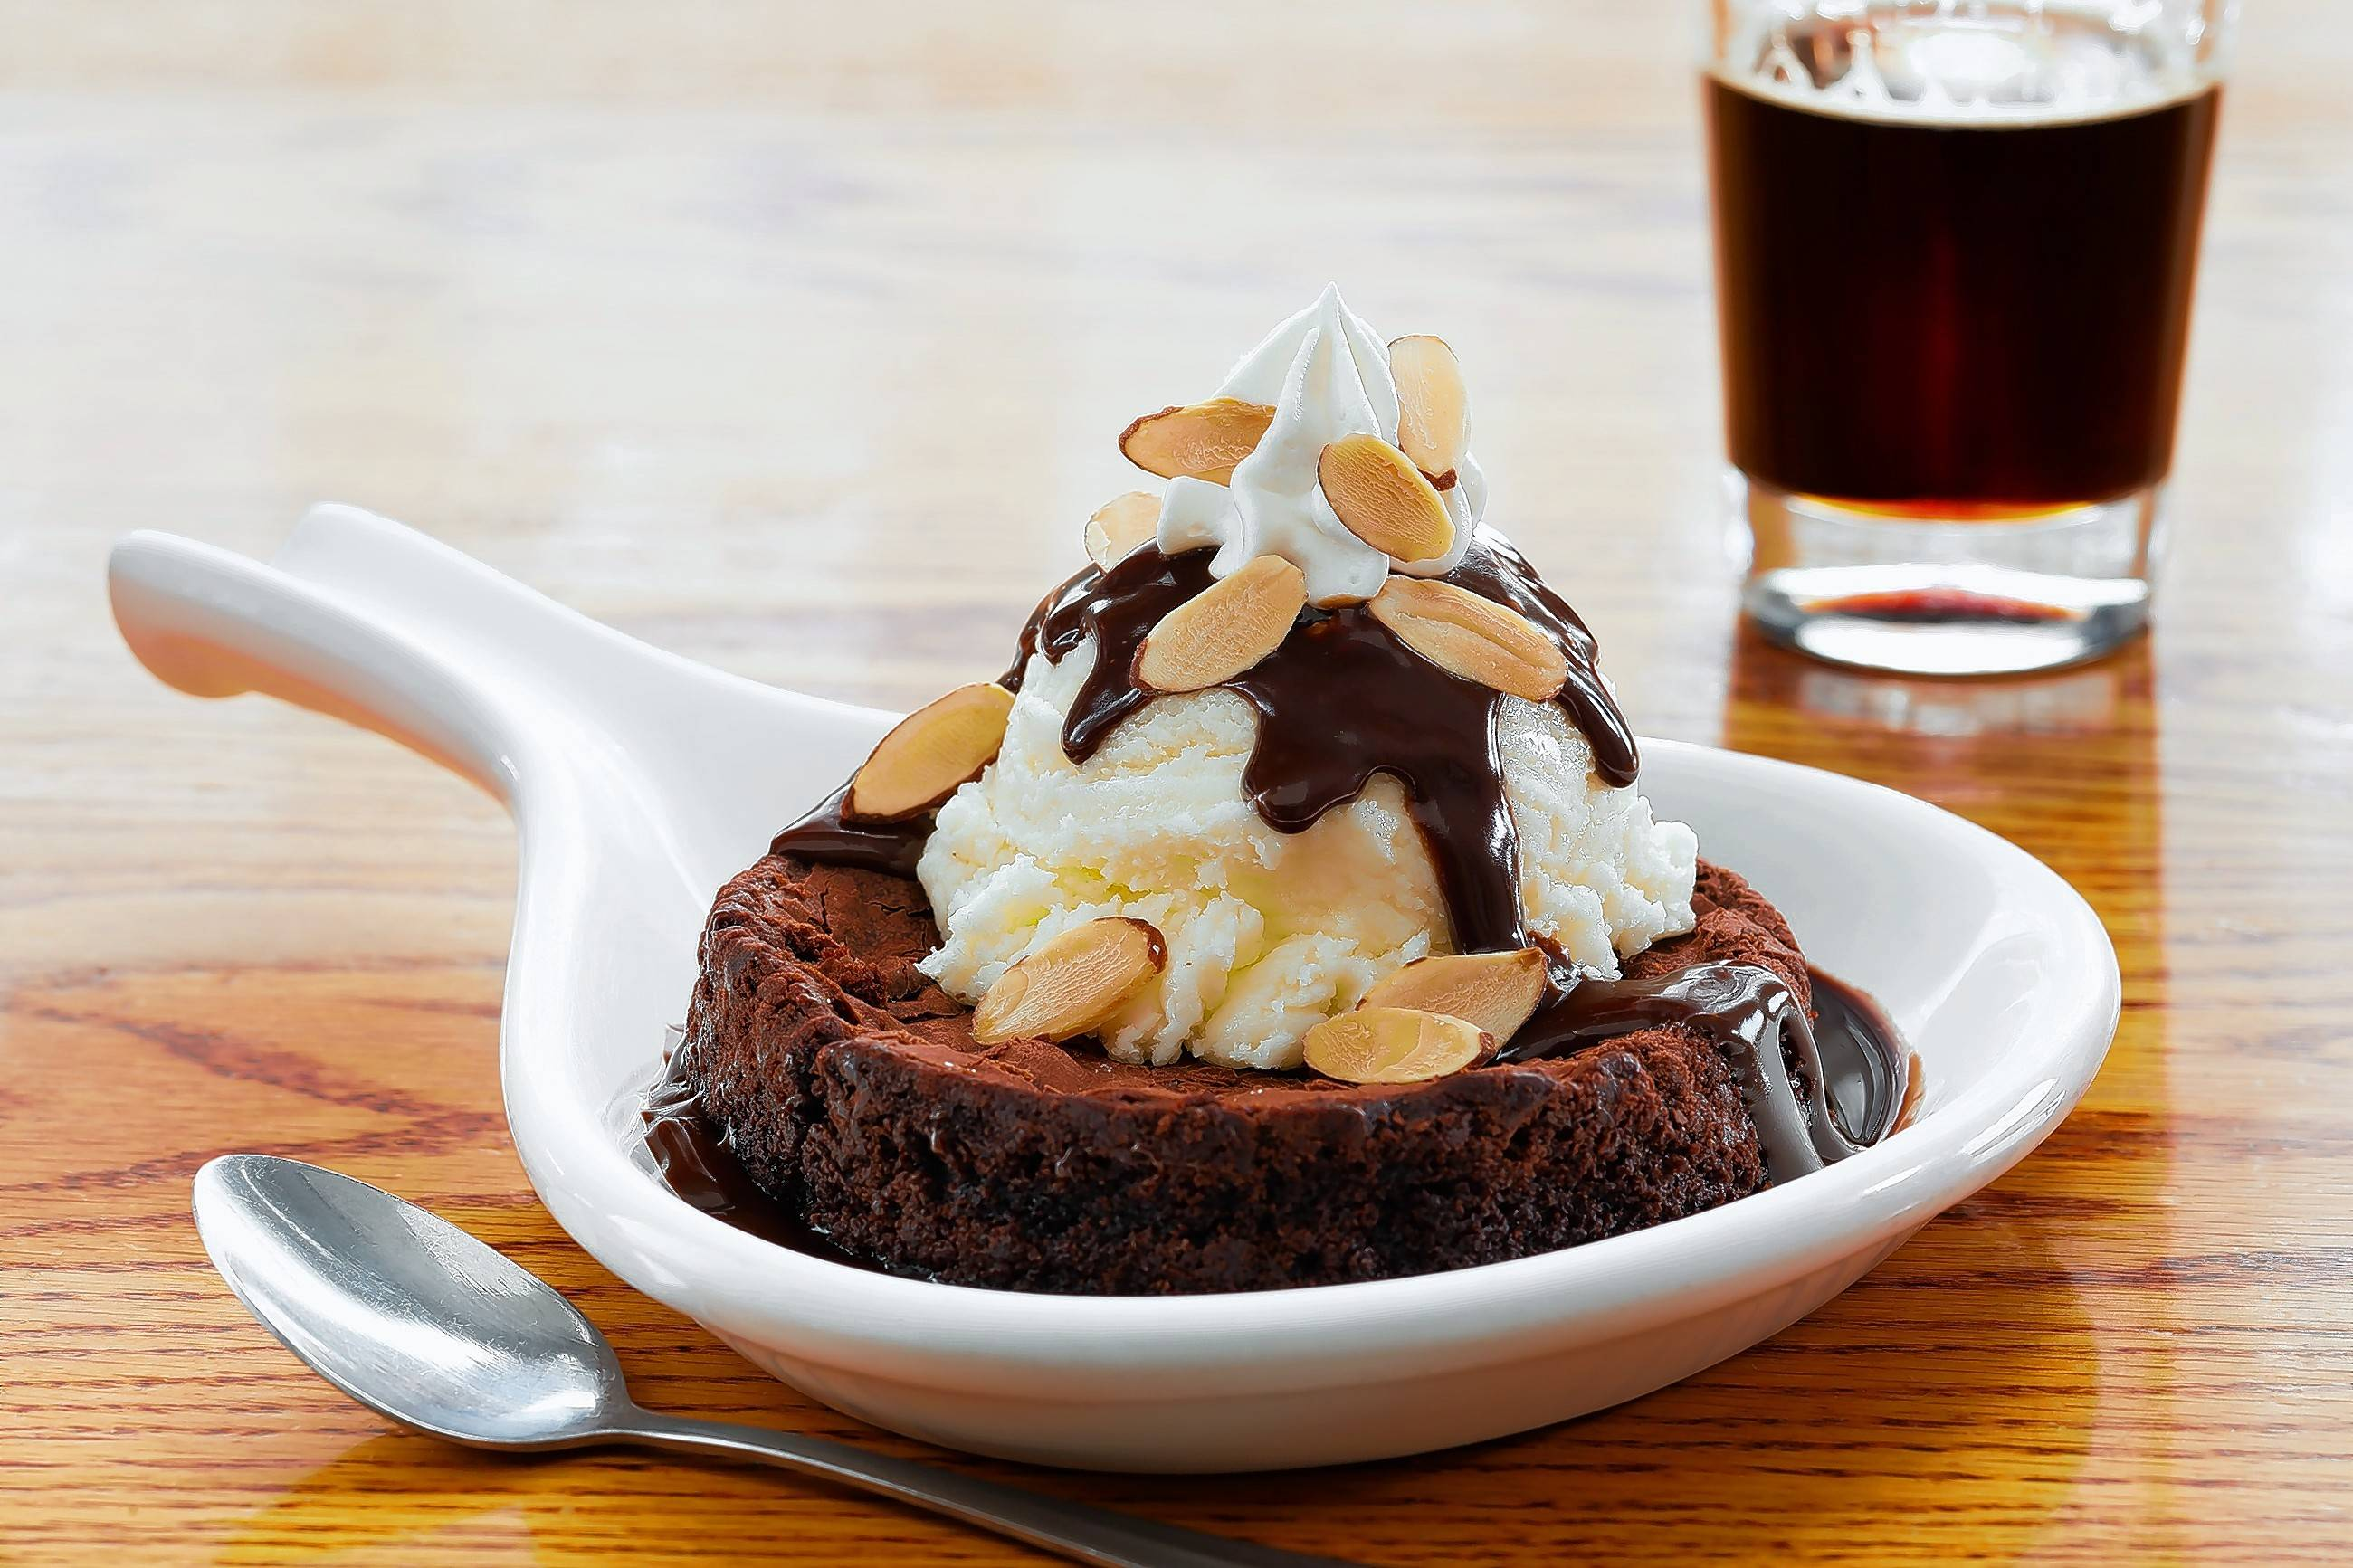 RAM's brownie skillet sundae, which will be available on the restaurant's Rosemont Restaurant Week menu, sure looks tempting.